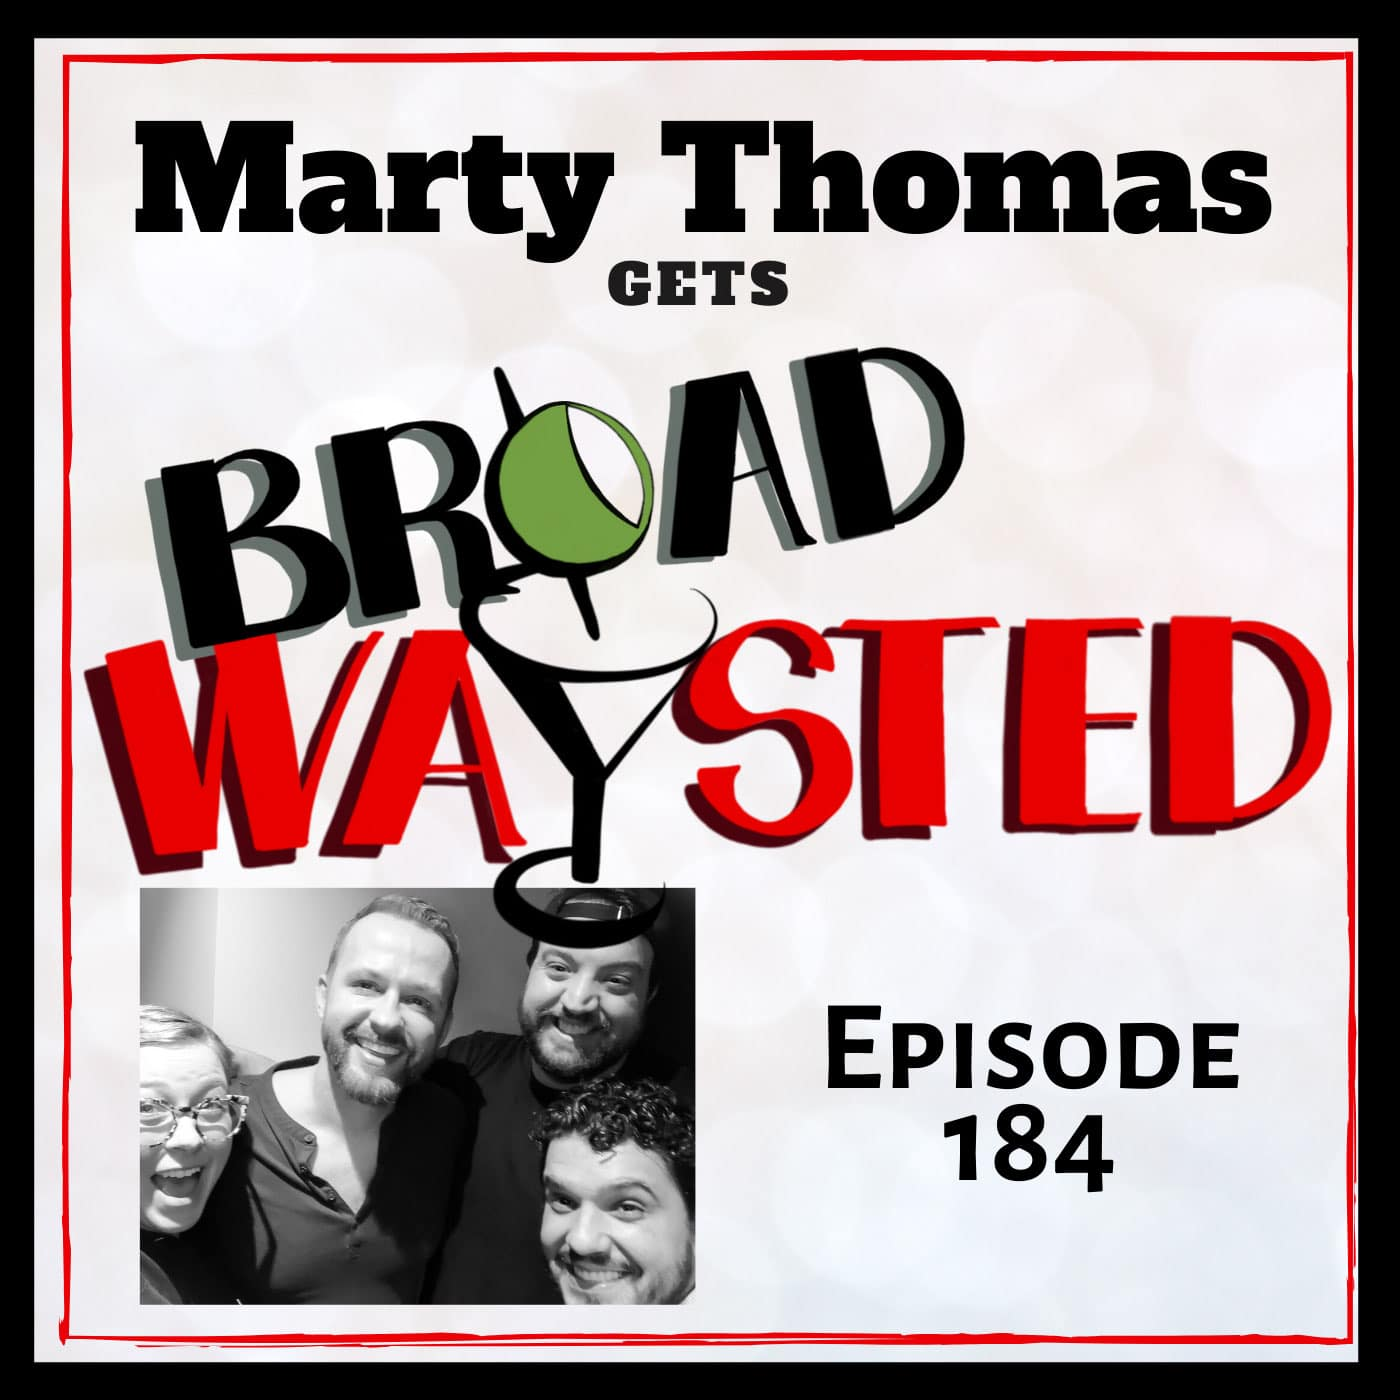 Broadwaysted Episode 184 Marty Thomas